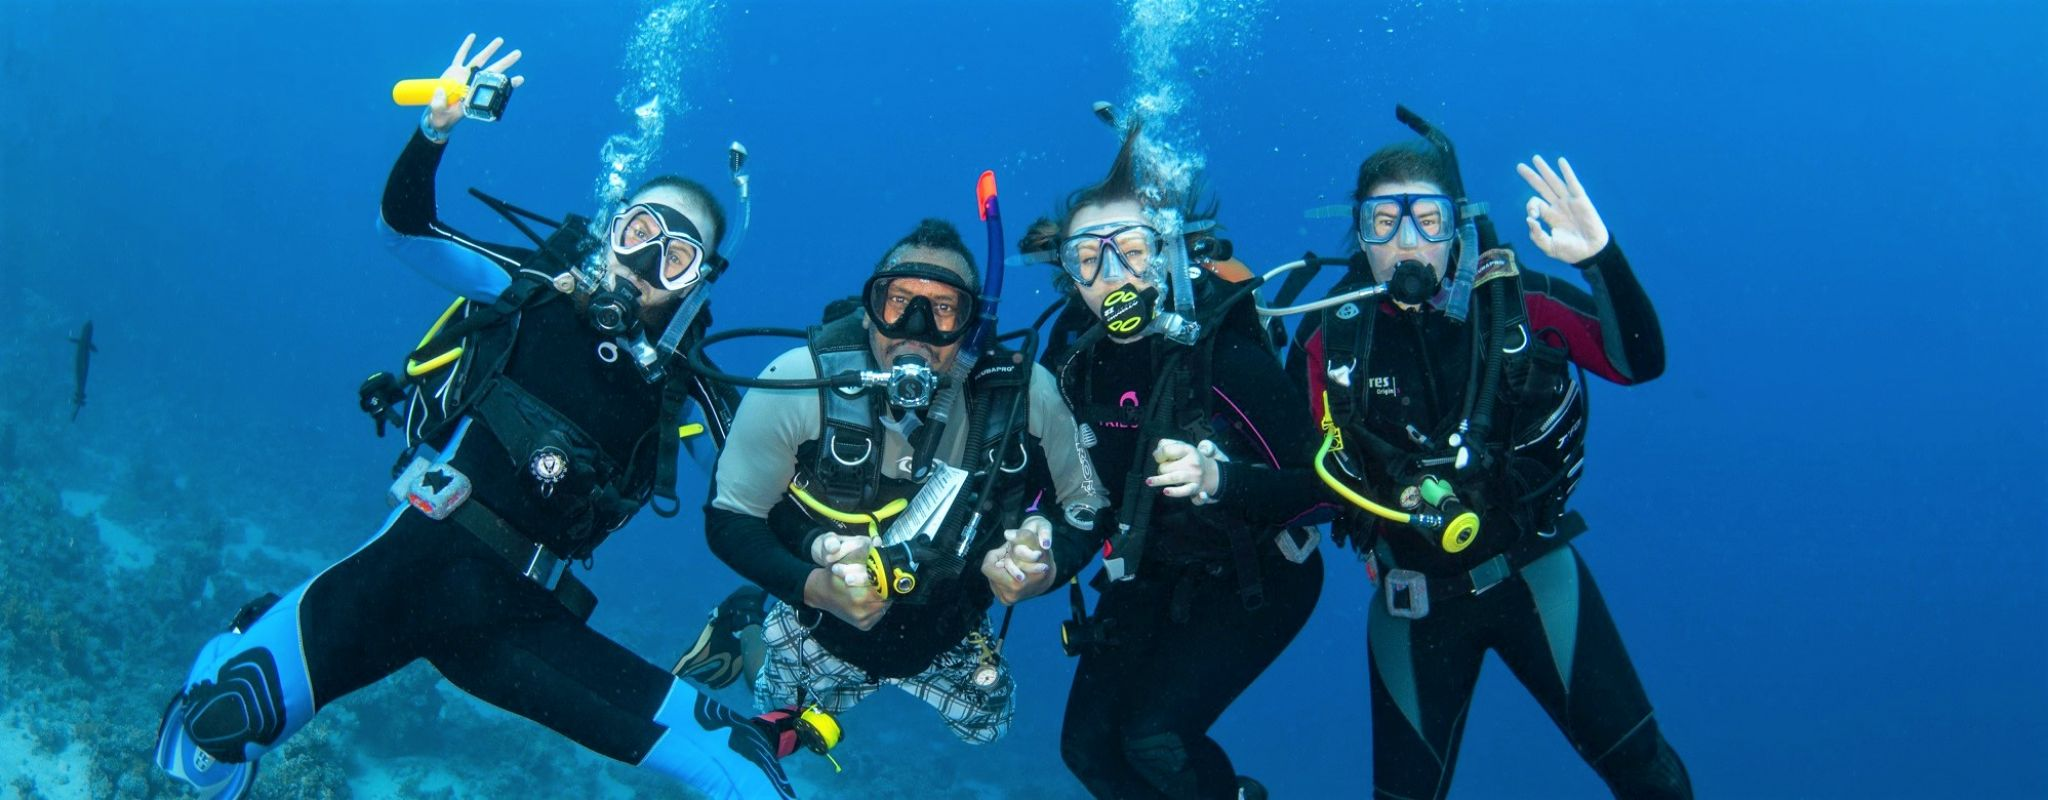 Learn to dive in the Sharm el Sheikh, Red Sea